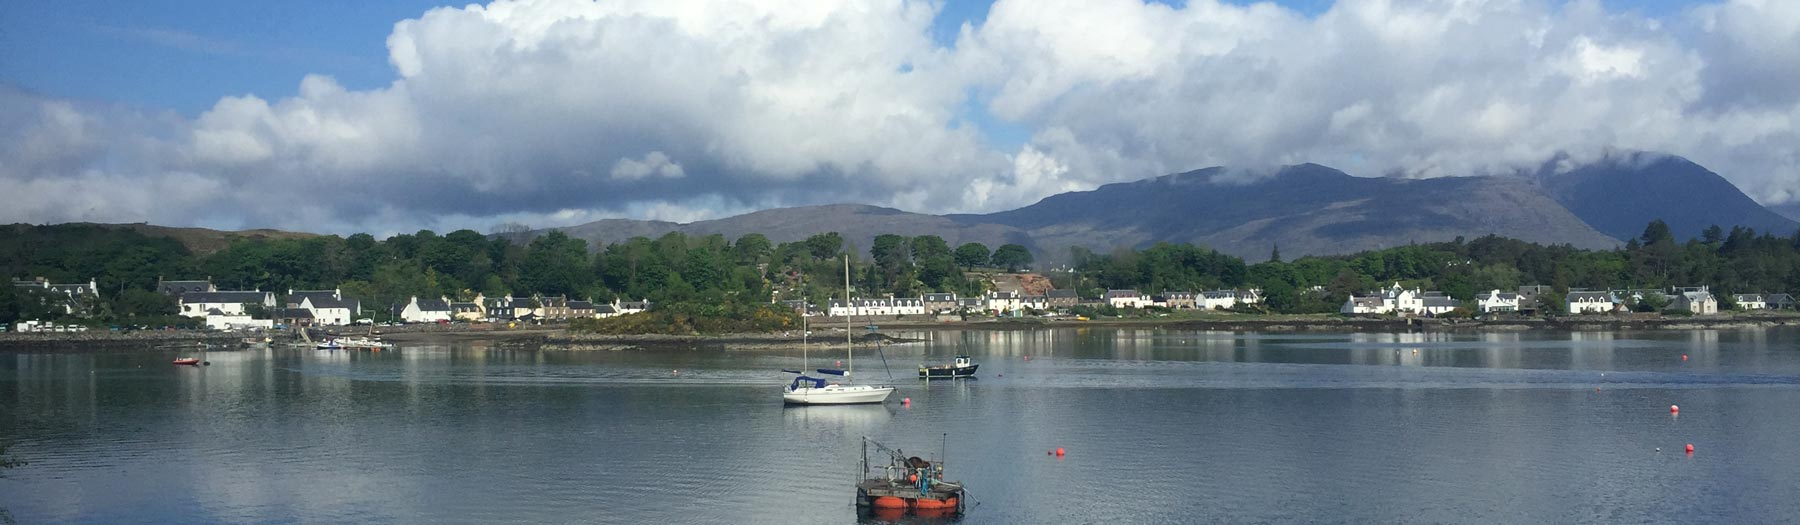 View of Plockton from the train on the Kyle Line